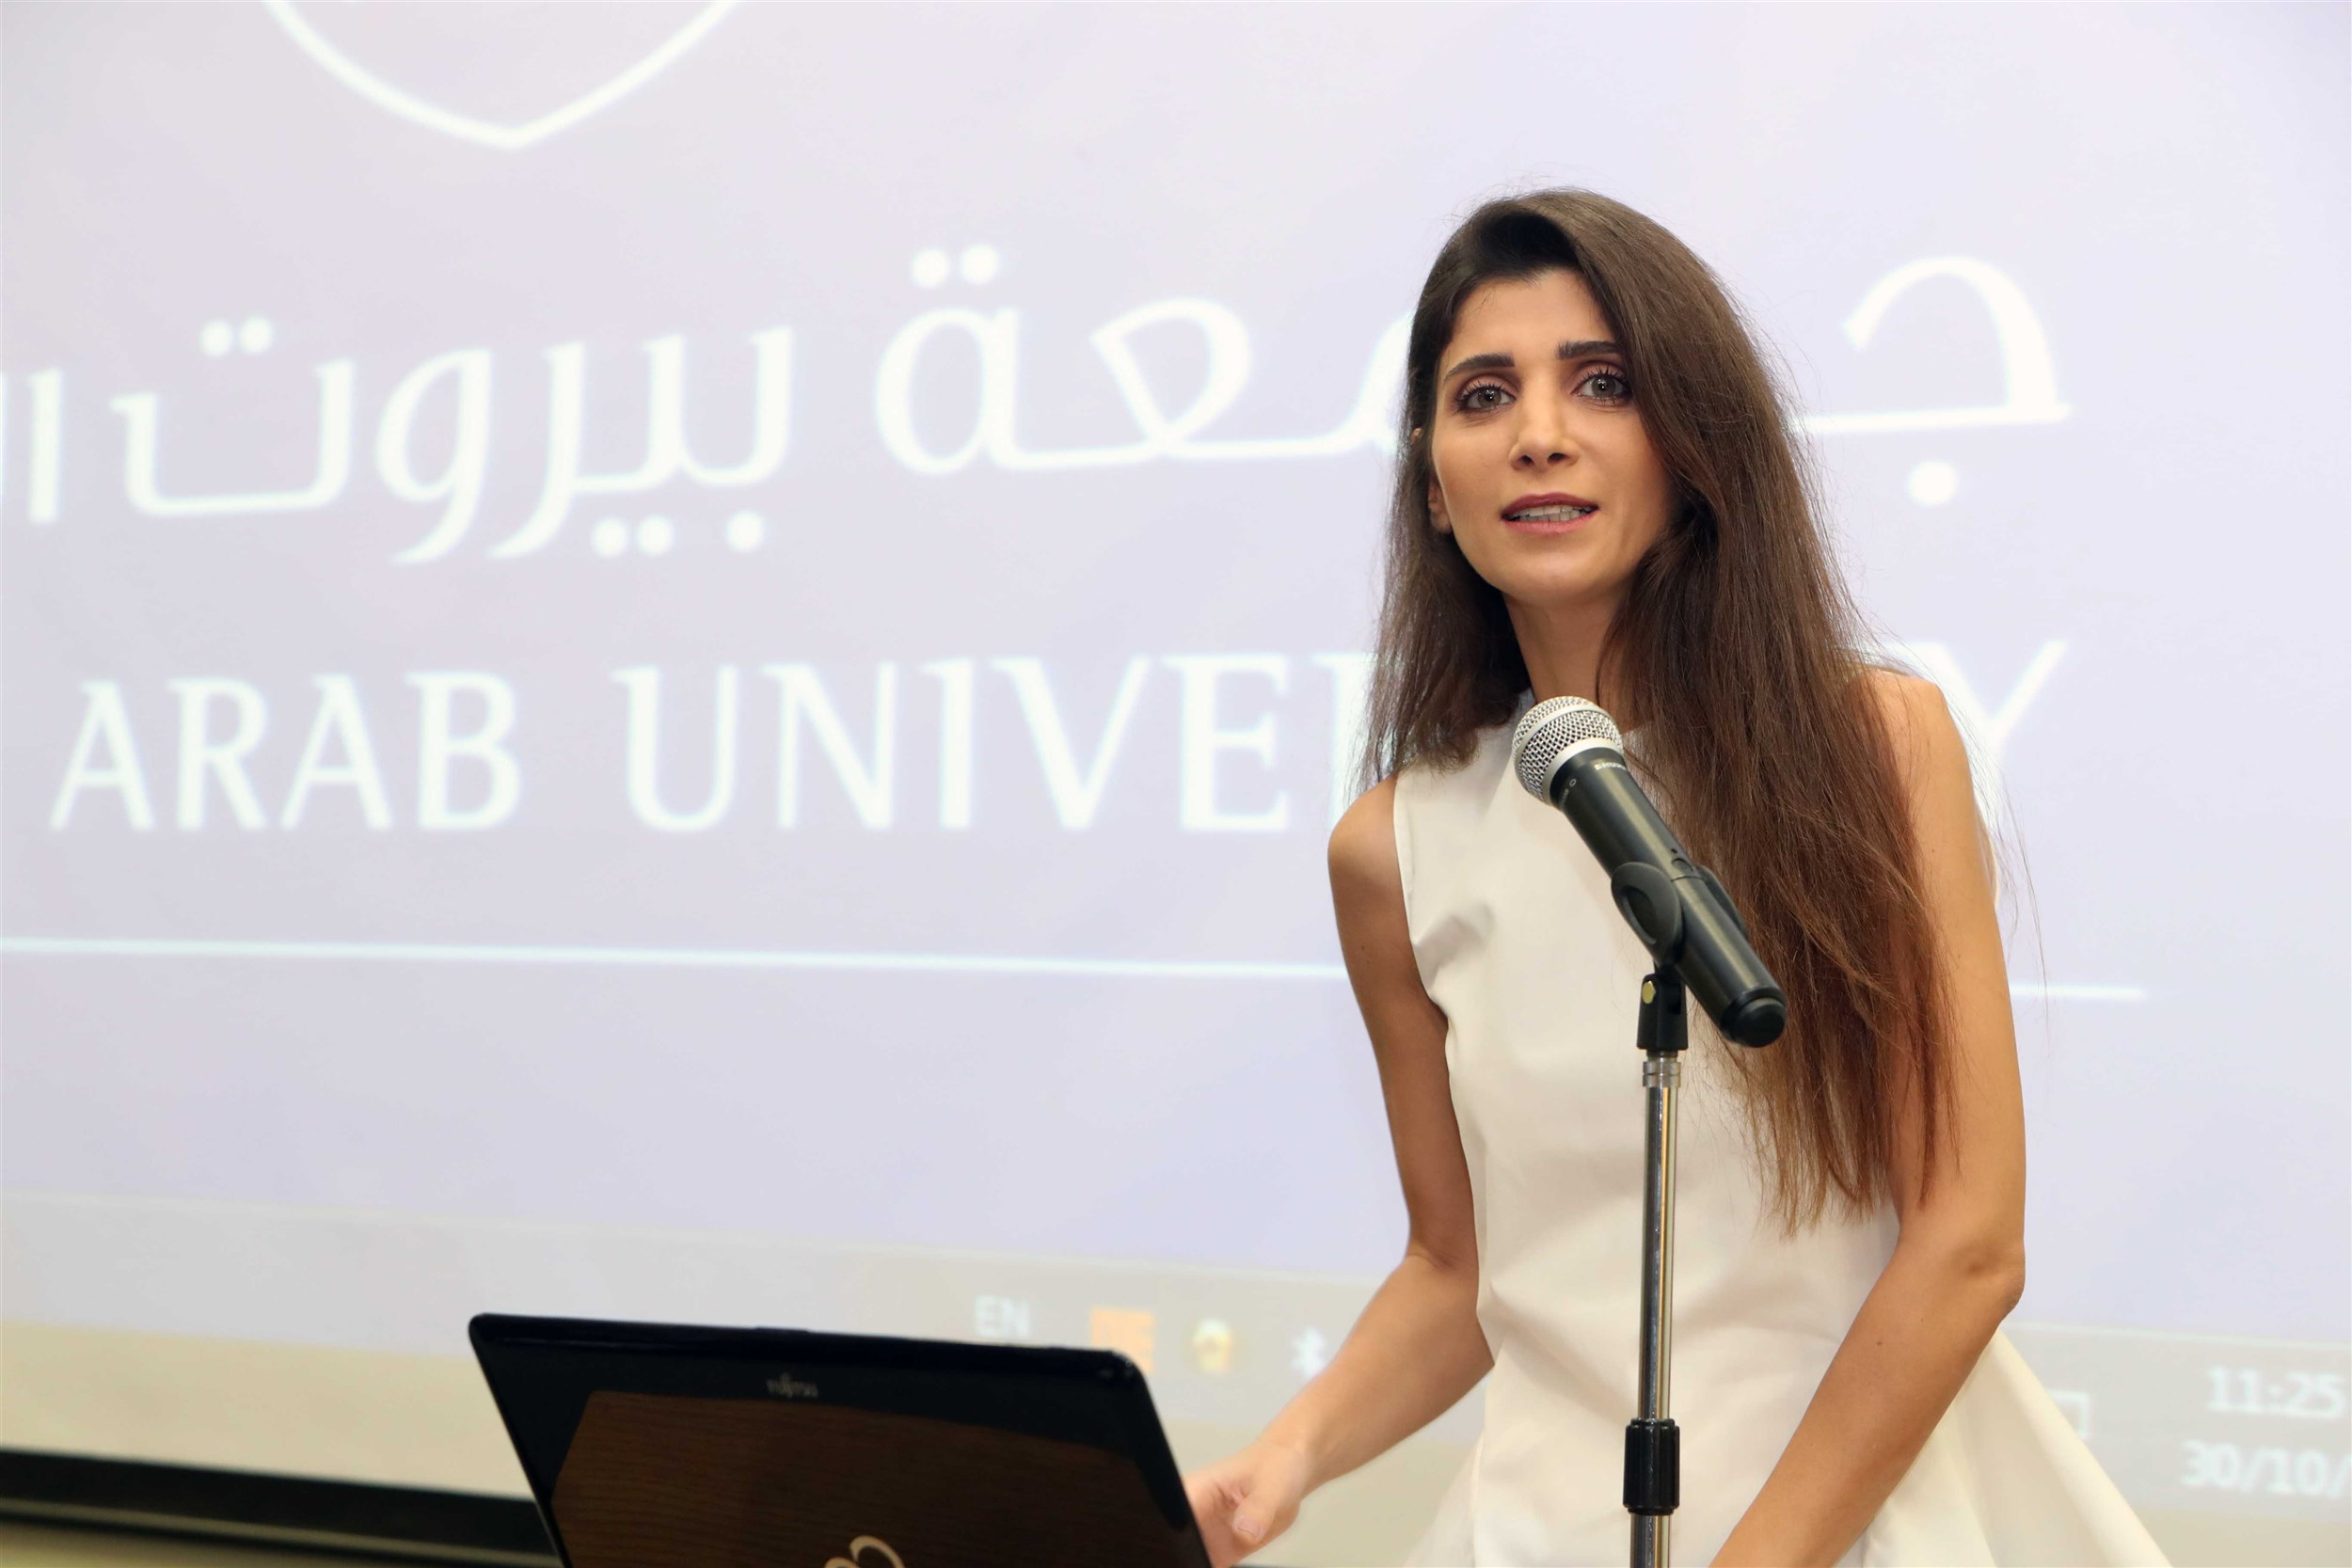 mrs. inas al jarmakani delivering her speech about her on-going belief in making dreams come true and defending the ability of imagination and sticking to one's dream and passion.